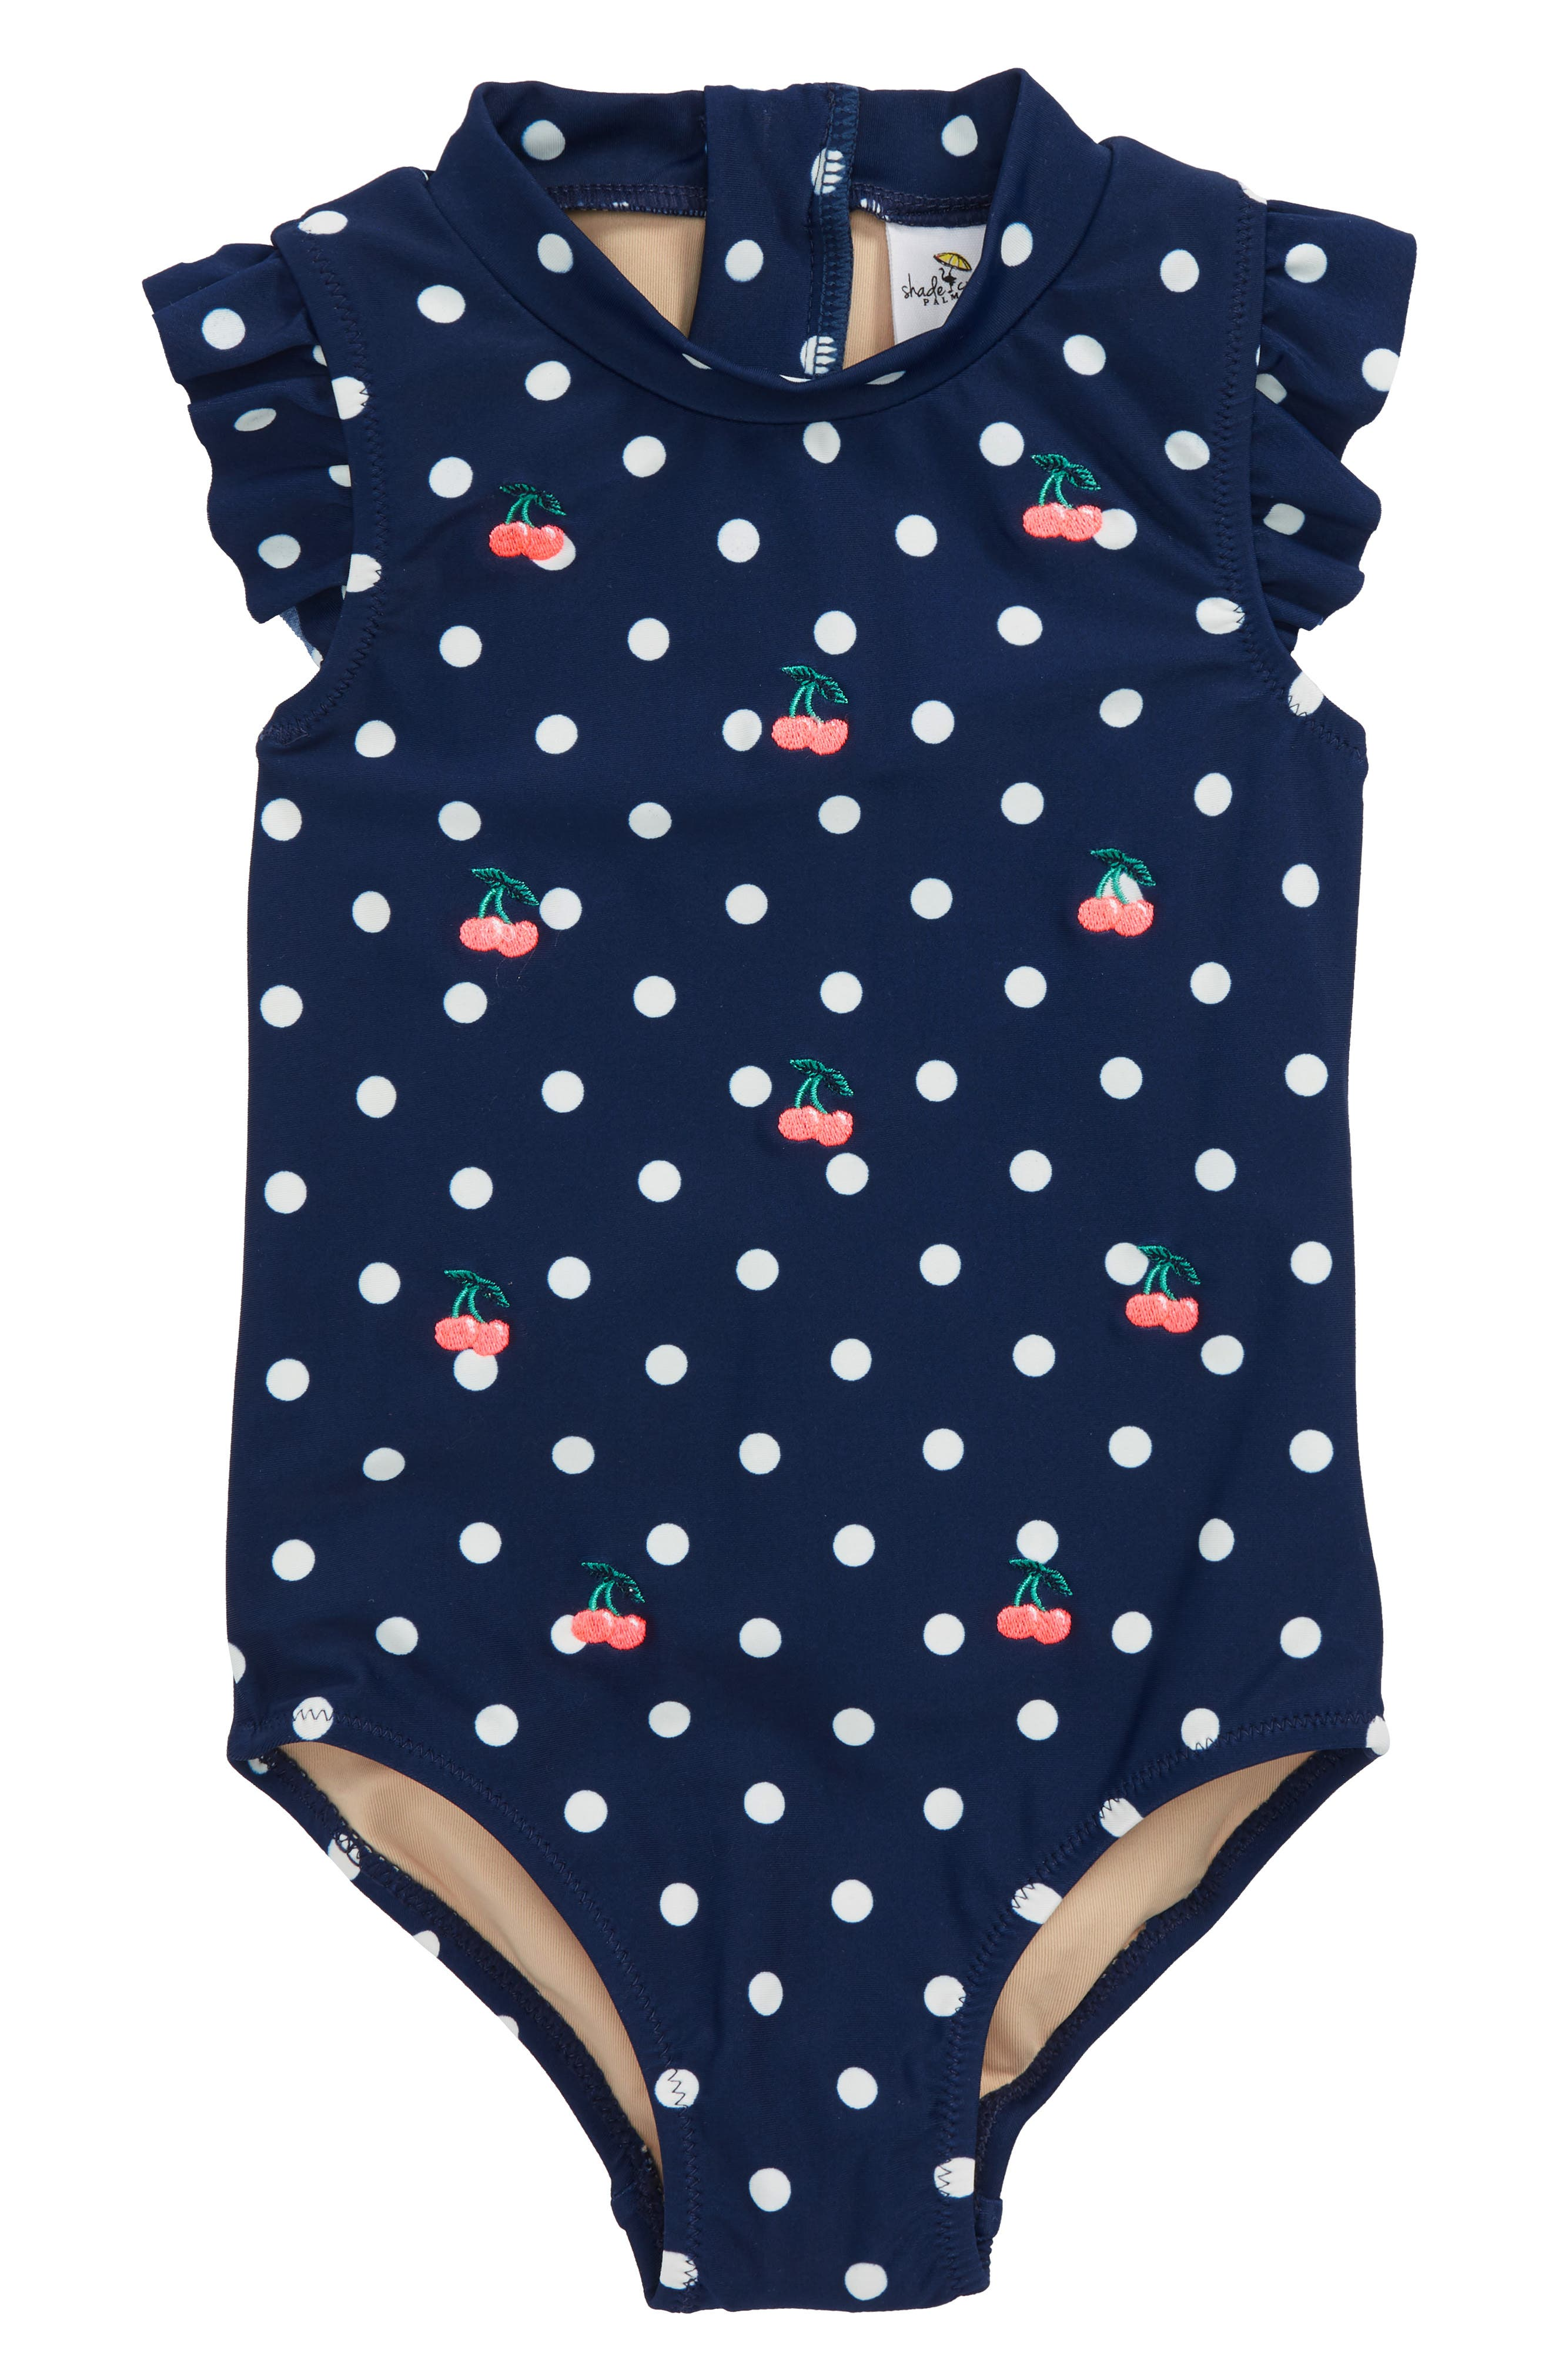 Shade Critters Embroidered Bing Cherry Dot One-Piece Swimsuit (Toddler Girls & Little Girls)